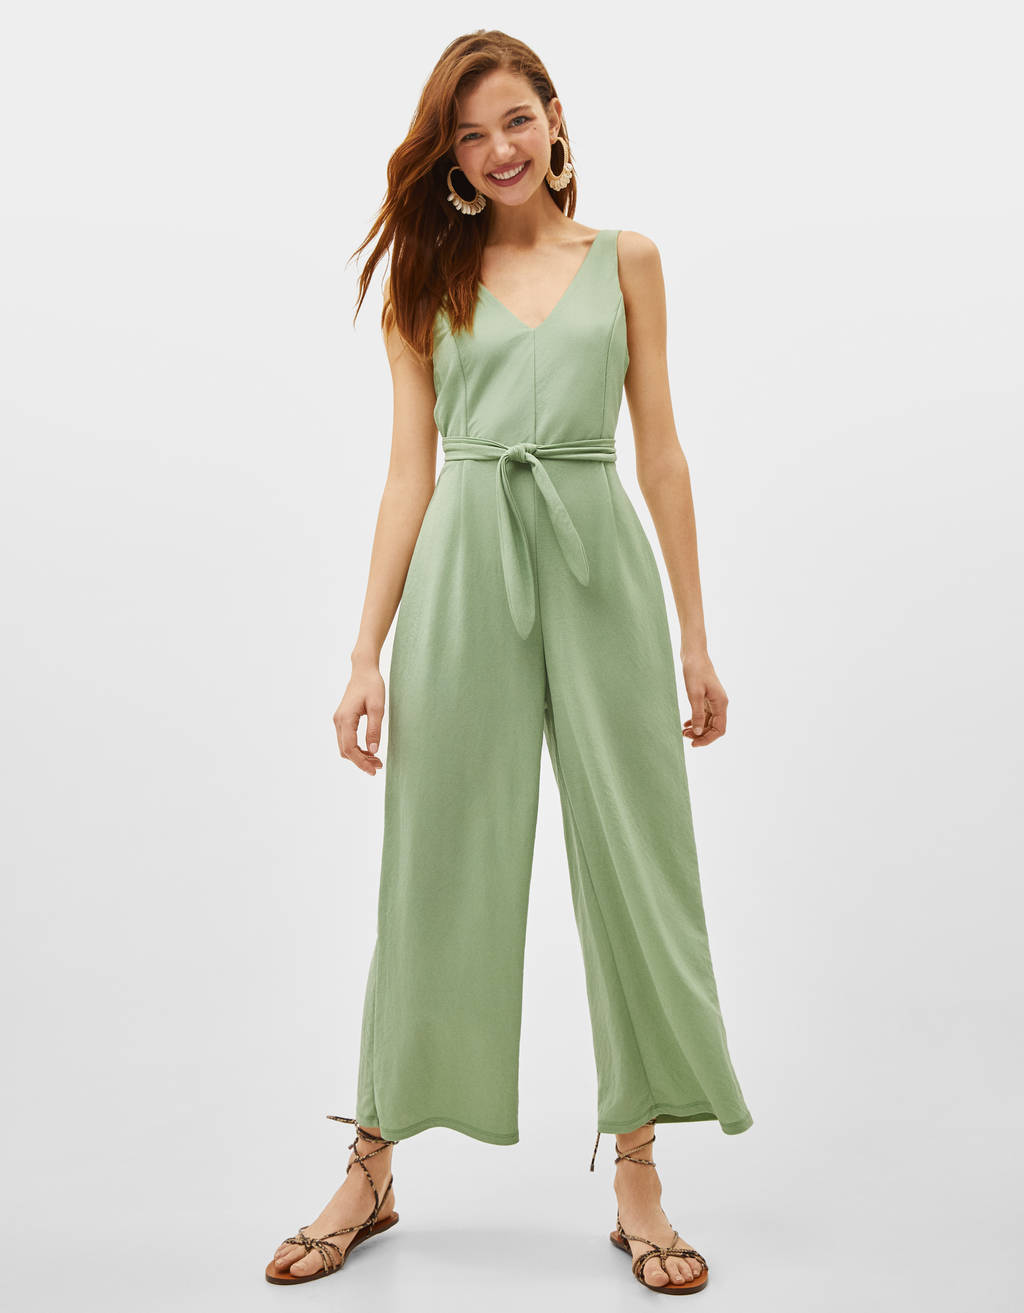 bd1c0640b46 Women s Jumpsuits   Dungarees - Spring Summer 2019